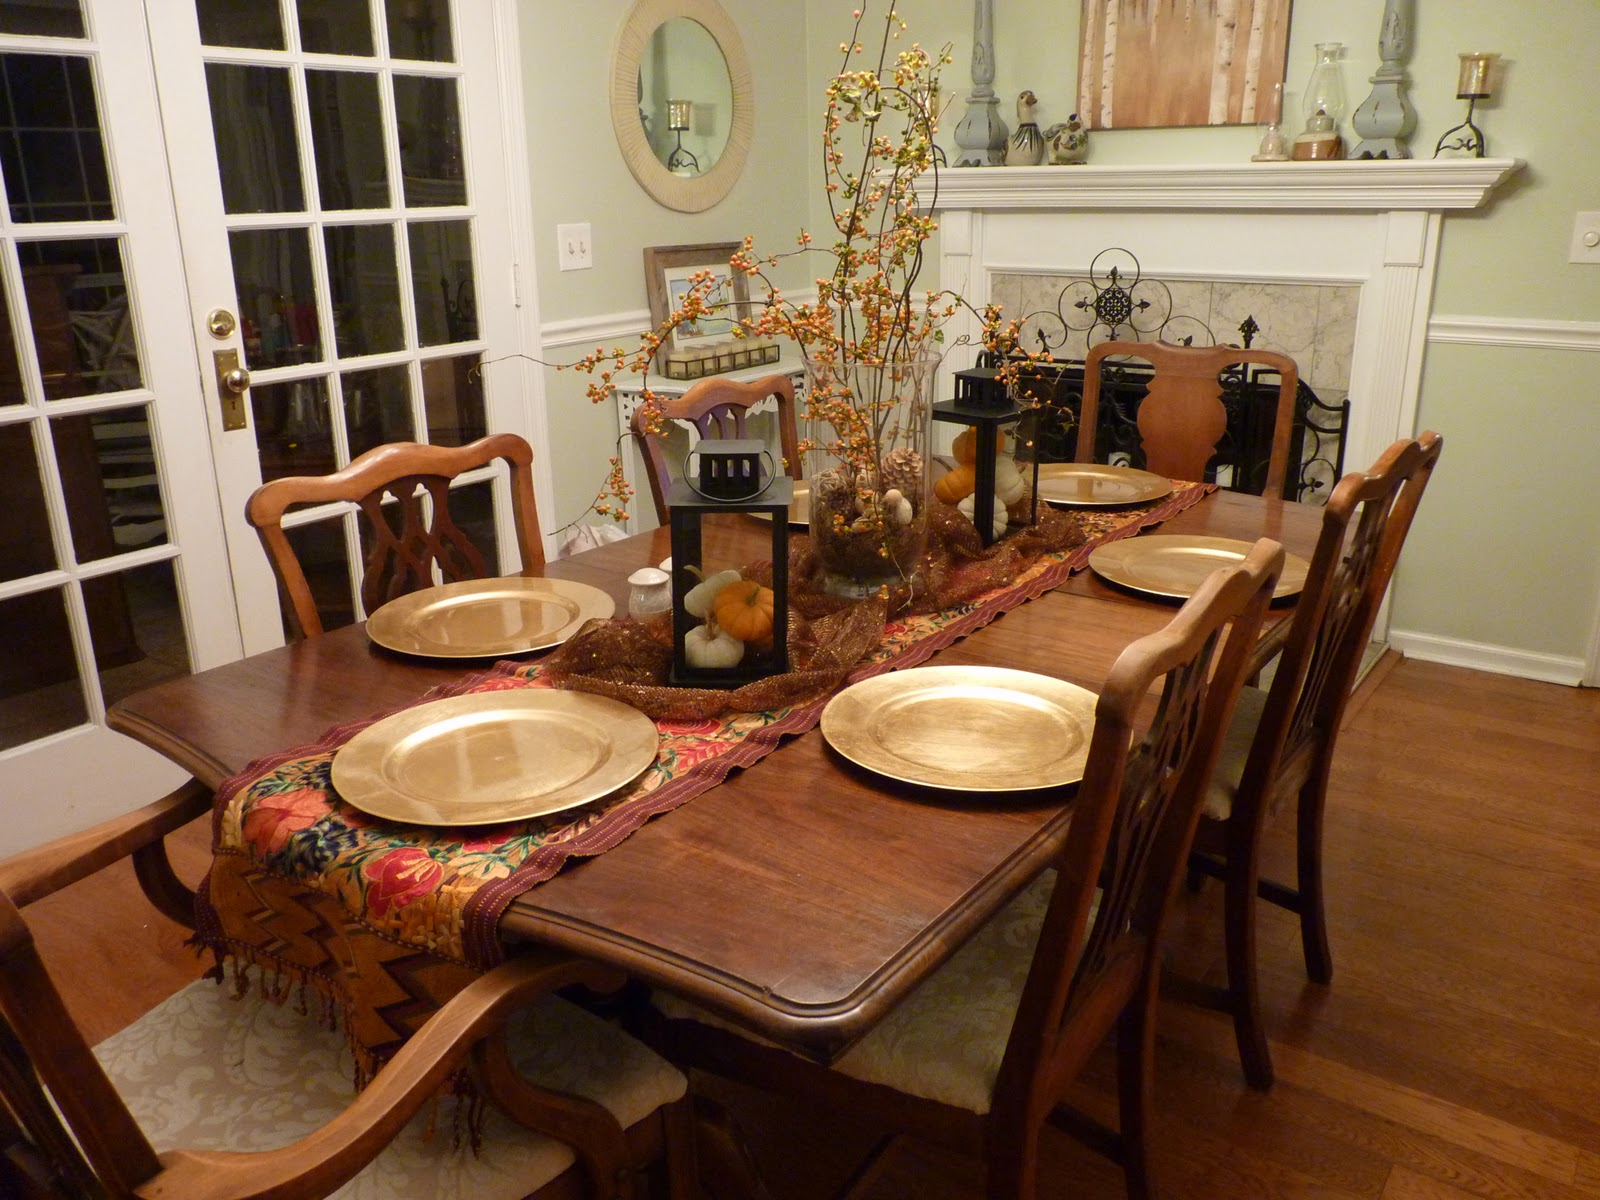 decorating-ideas-for-dining-room-table.jpg